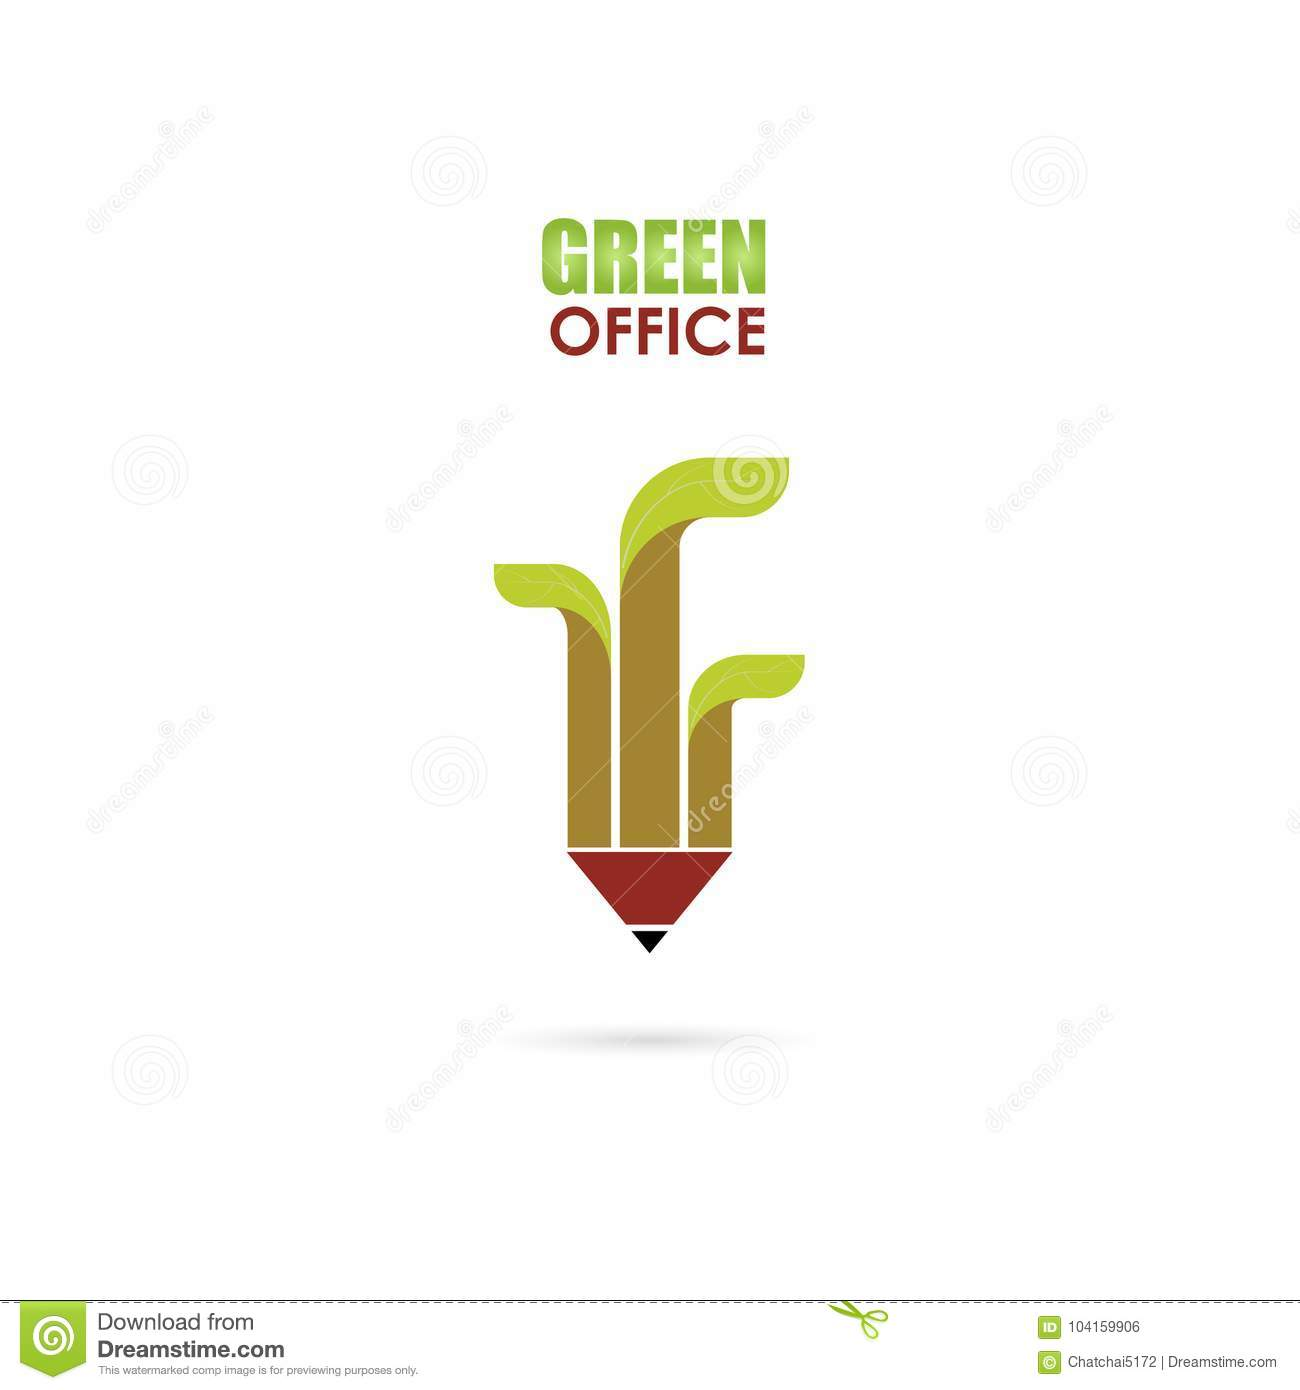 Office Sign Template from thumbs.dreamstime.com